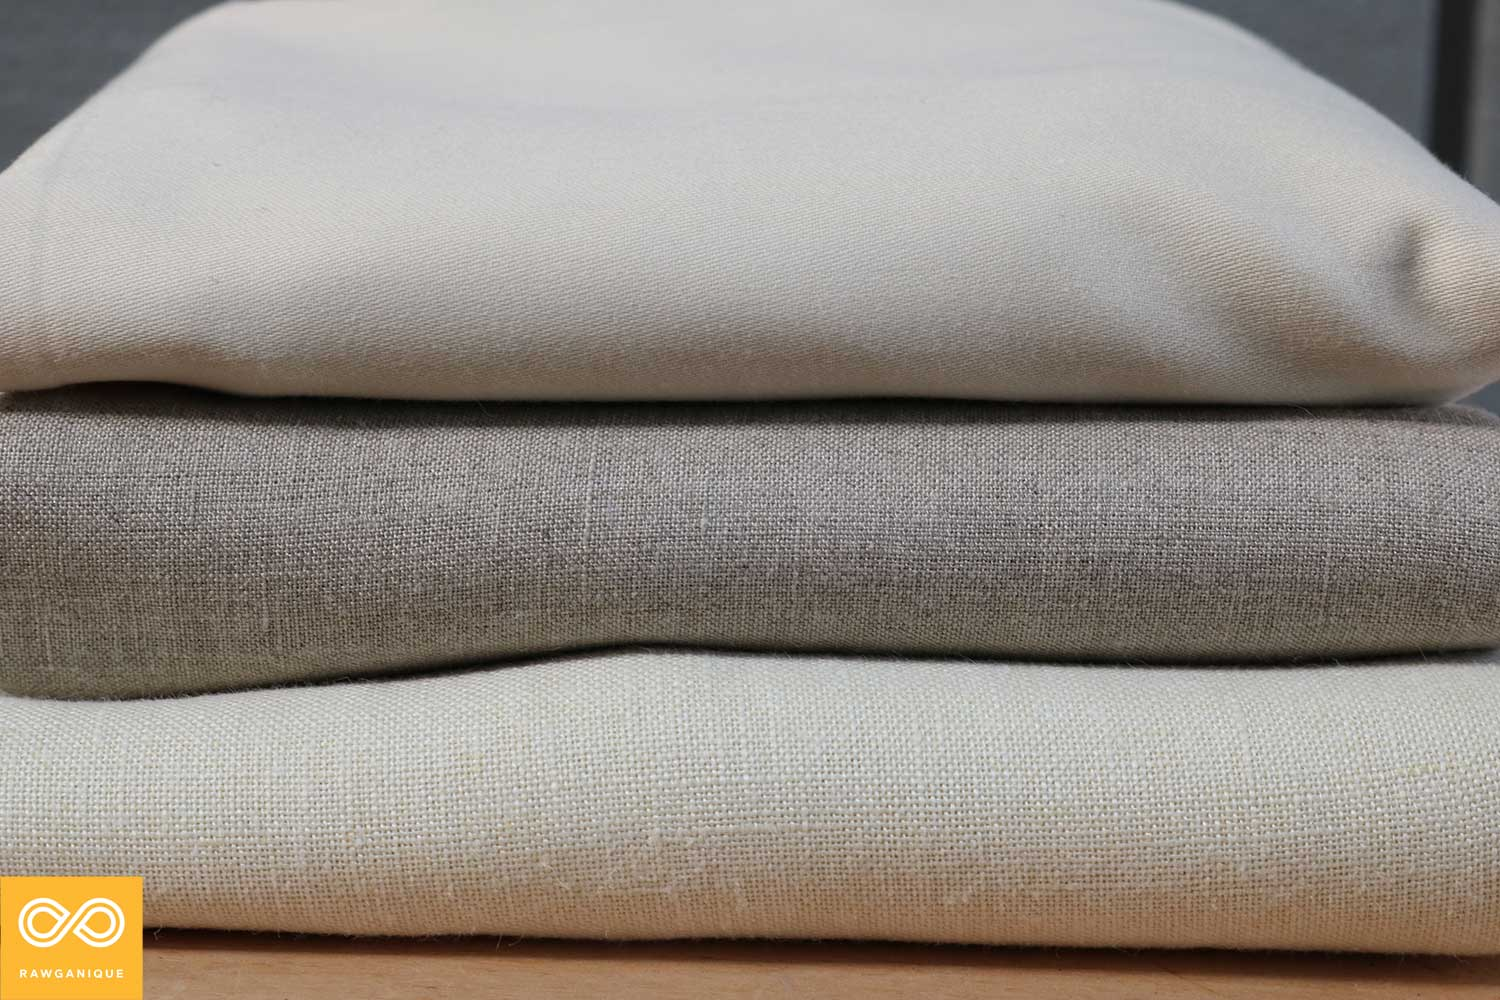 Organic sateen cotton (top), organic linen (middle), and organic hemp (bottom) bed sheets.